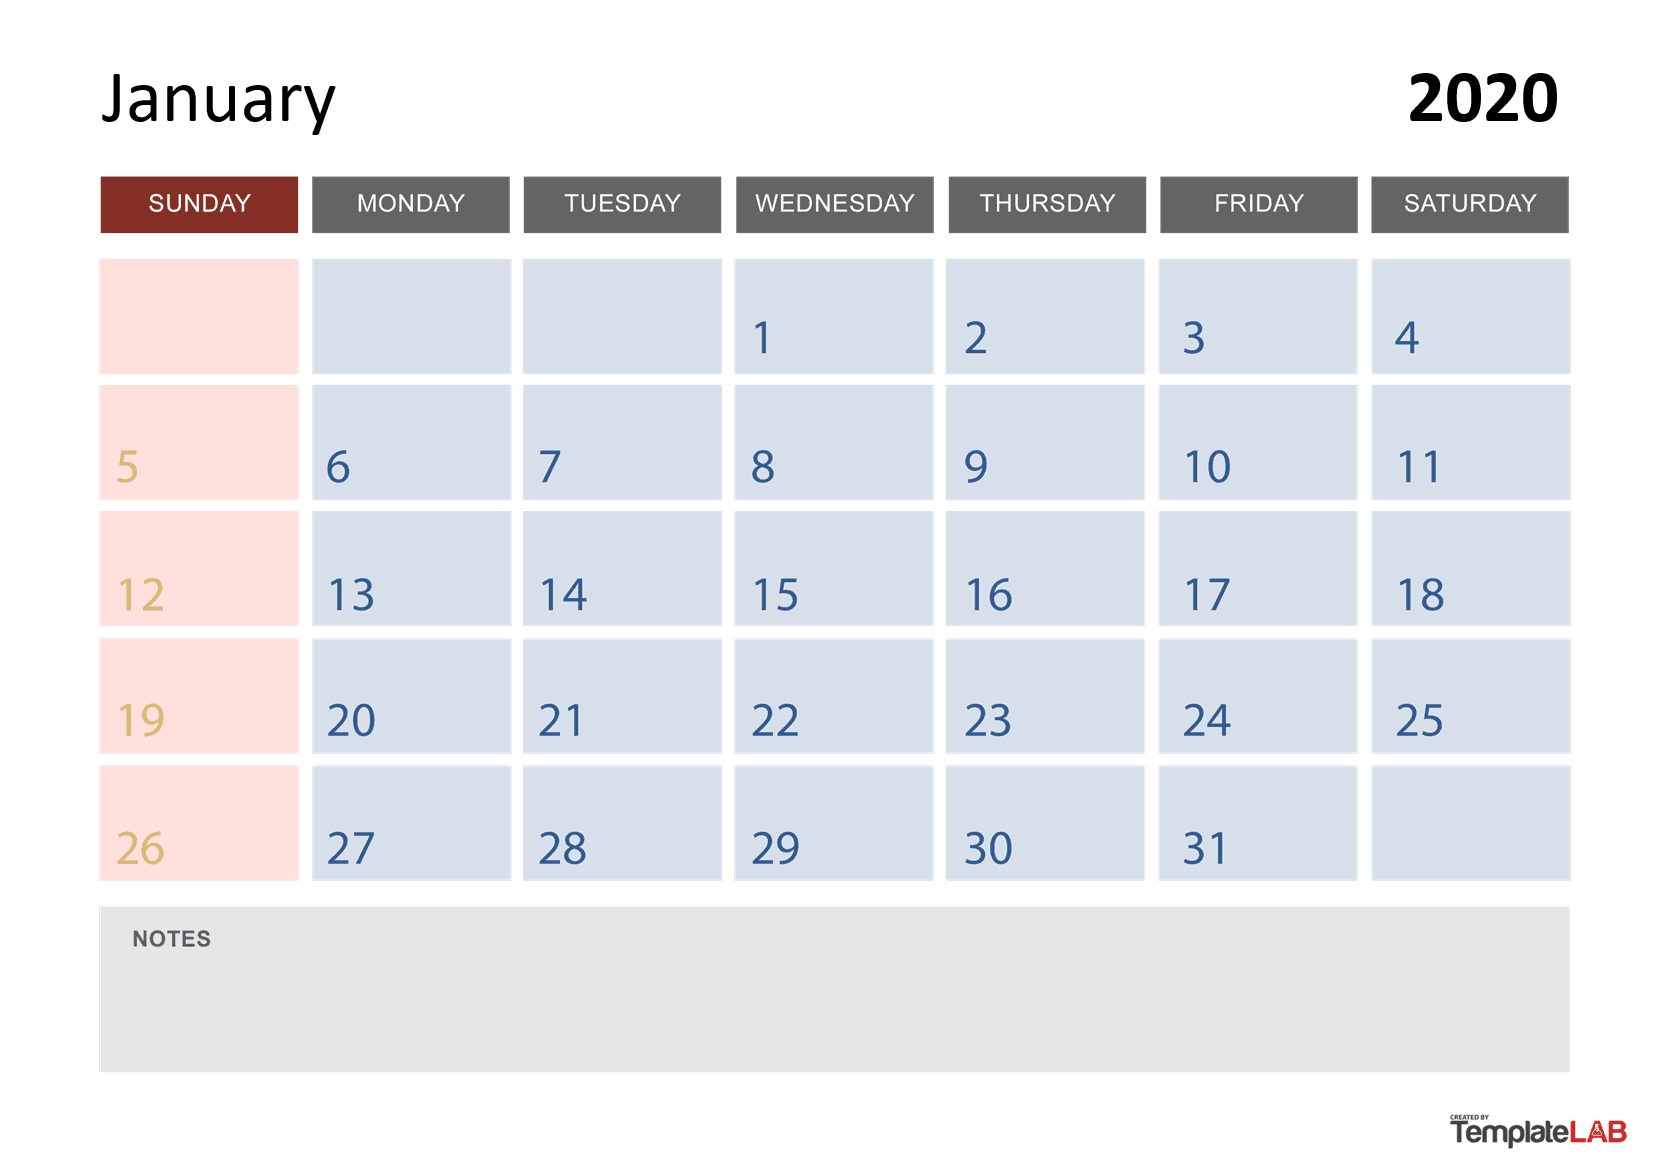 2020 Printable Calendars [Monthly, With Holidays, Yearly] ᐅ intended for Calendar With Lots Of Space To Write 2020